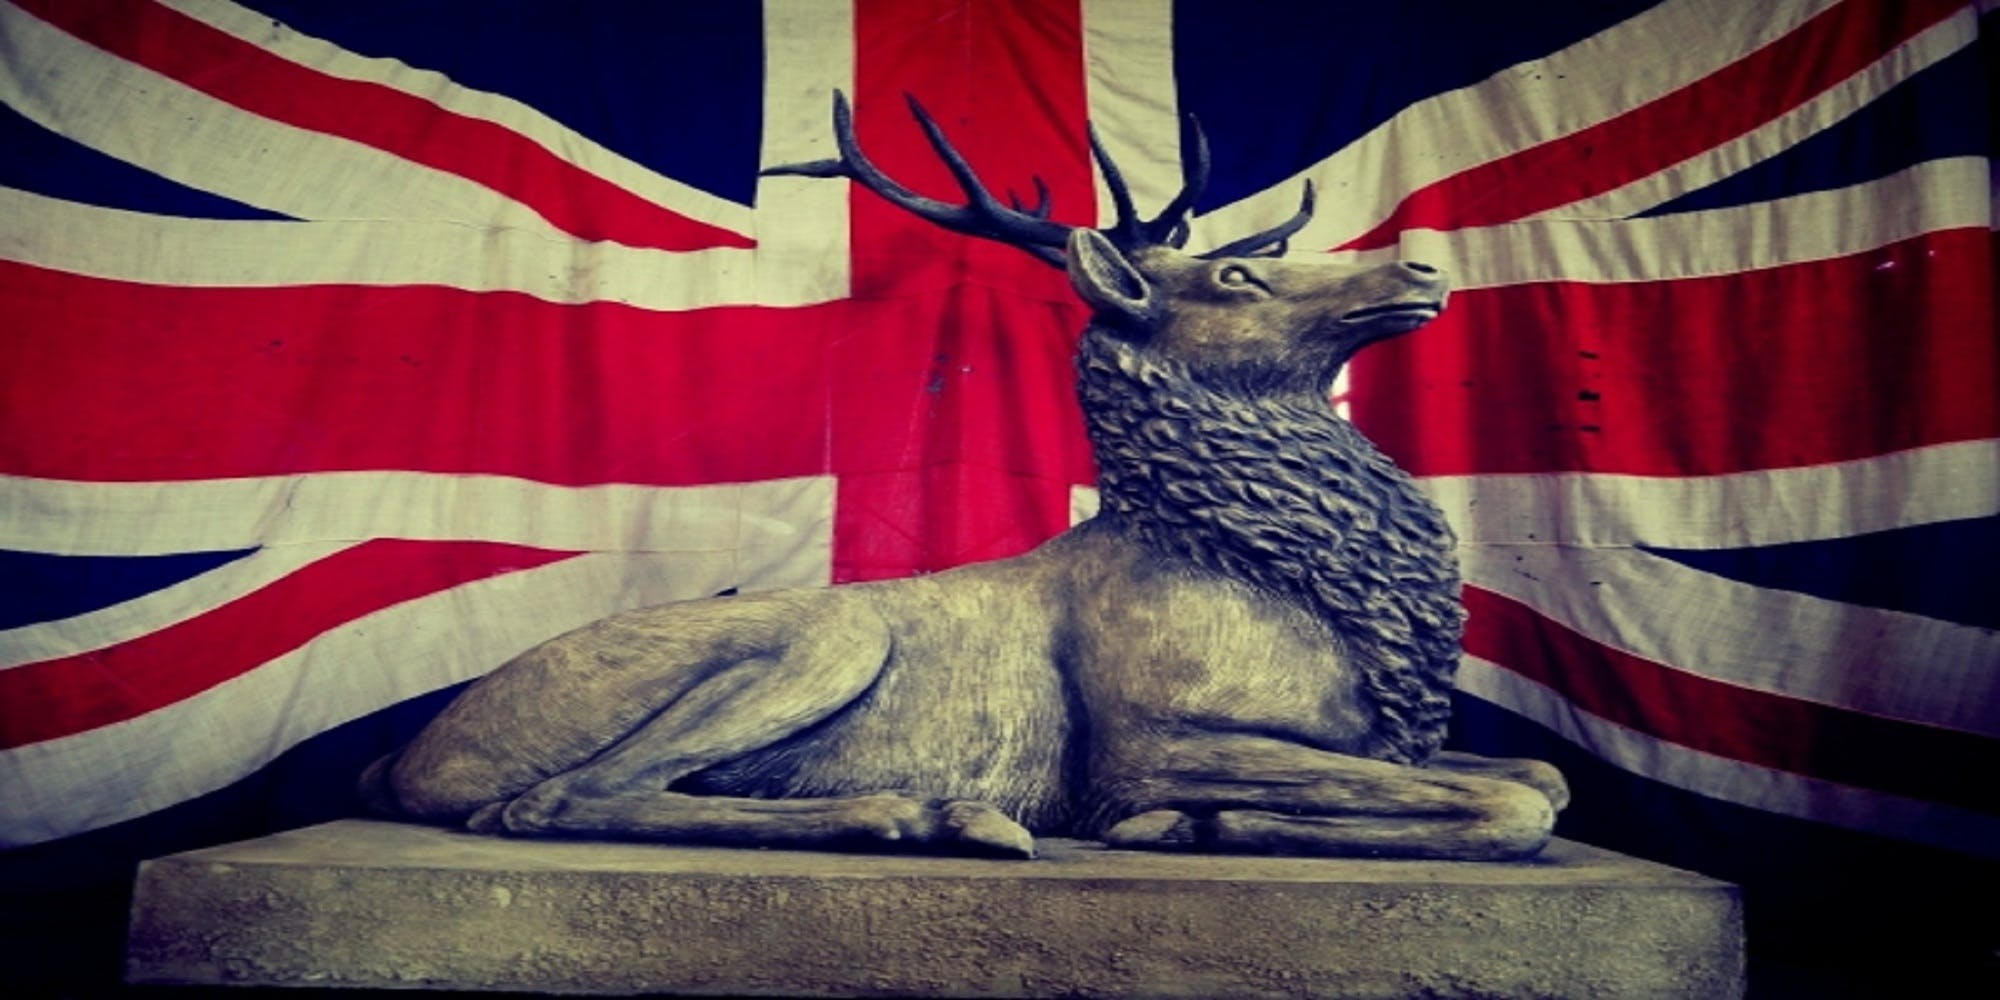 Free stock photo of Stone Reposing Stag For Garden Deer Antique